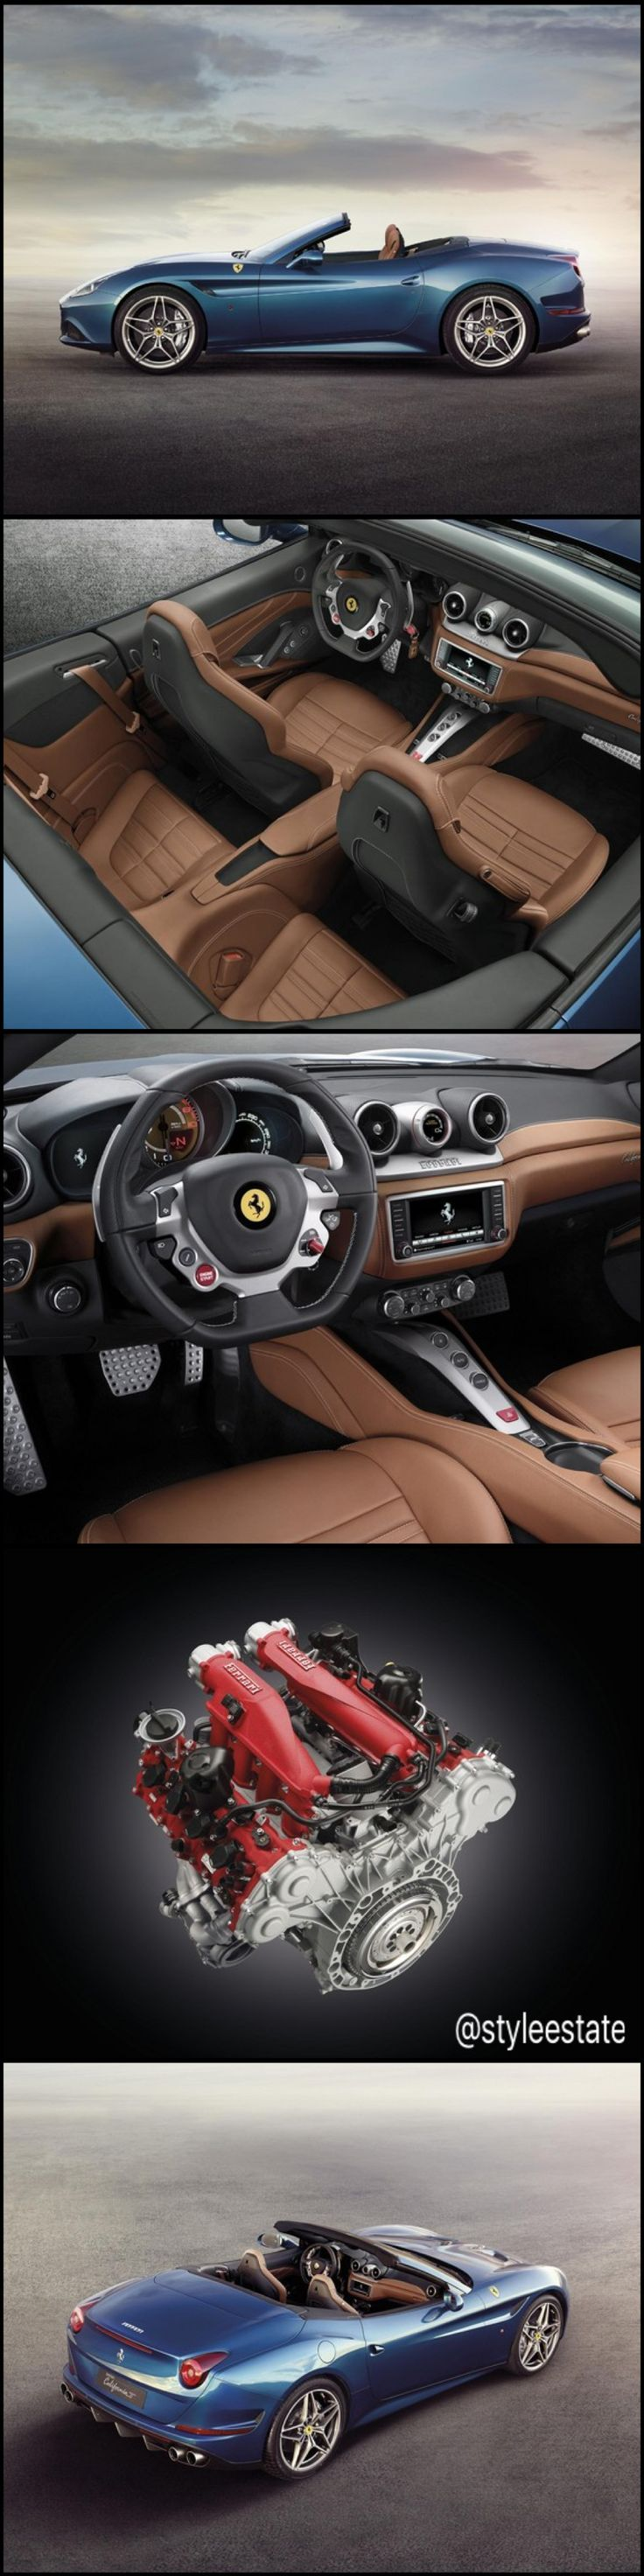 pictures fuv prices hybrid car performance powertrain insurance specs photos magazine the price for news suv ferrari info spy lusso by cards on crossover shots and interior of